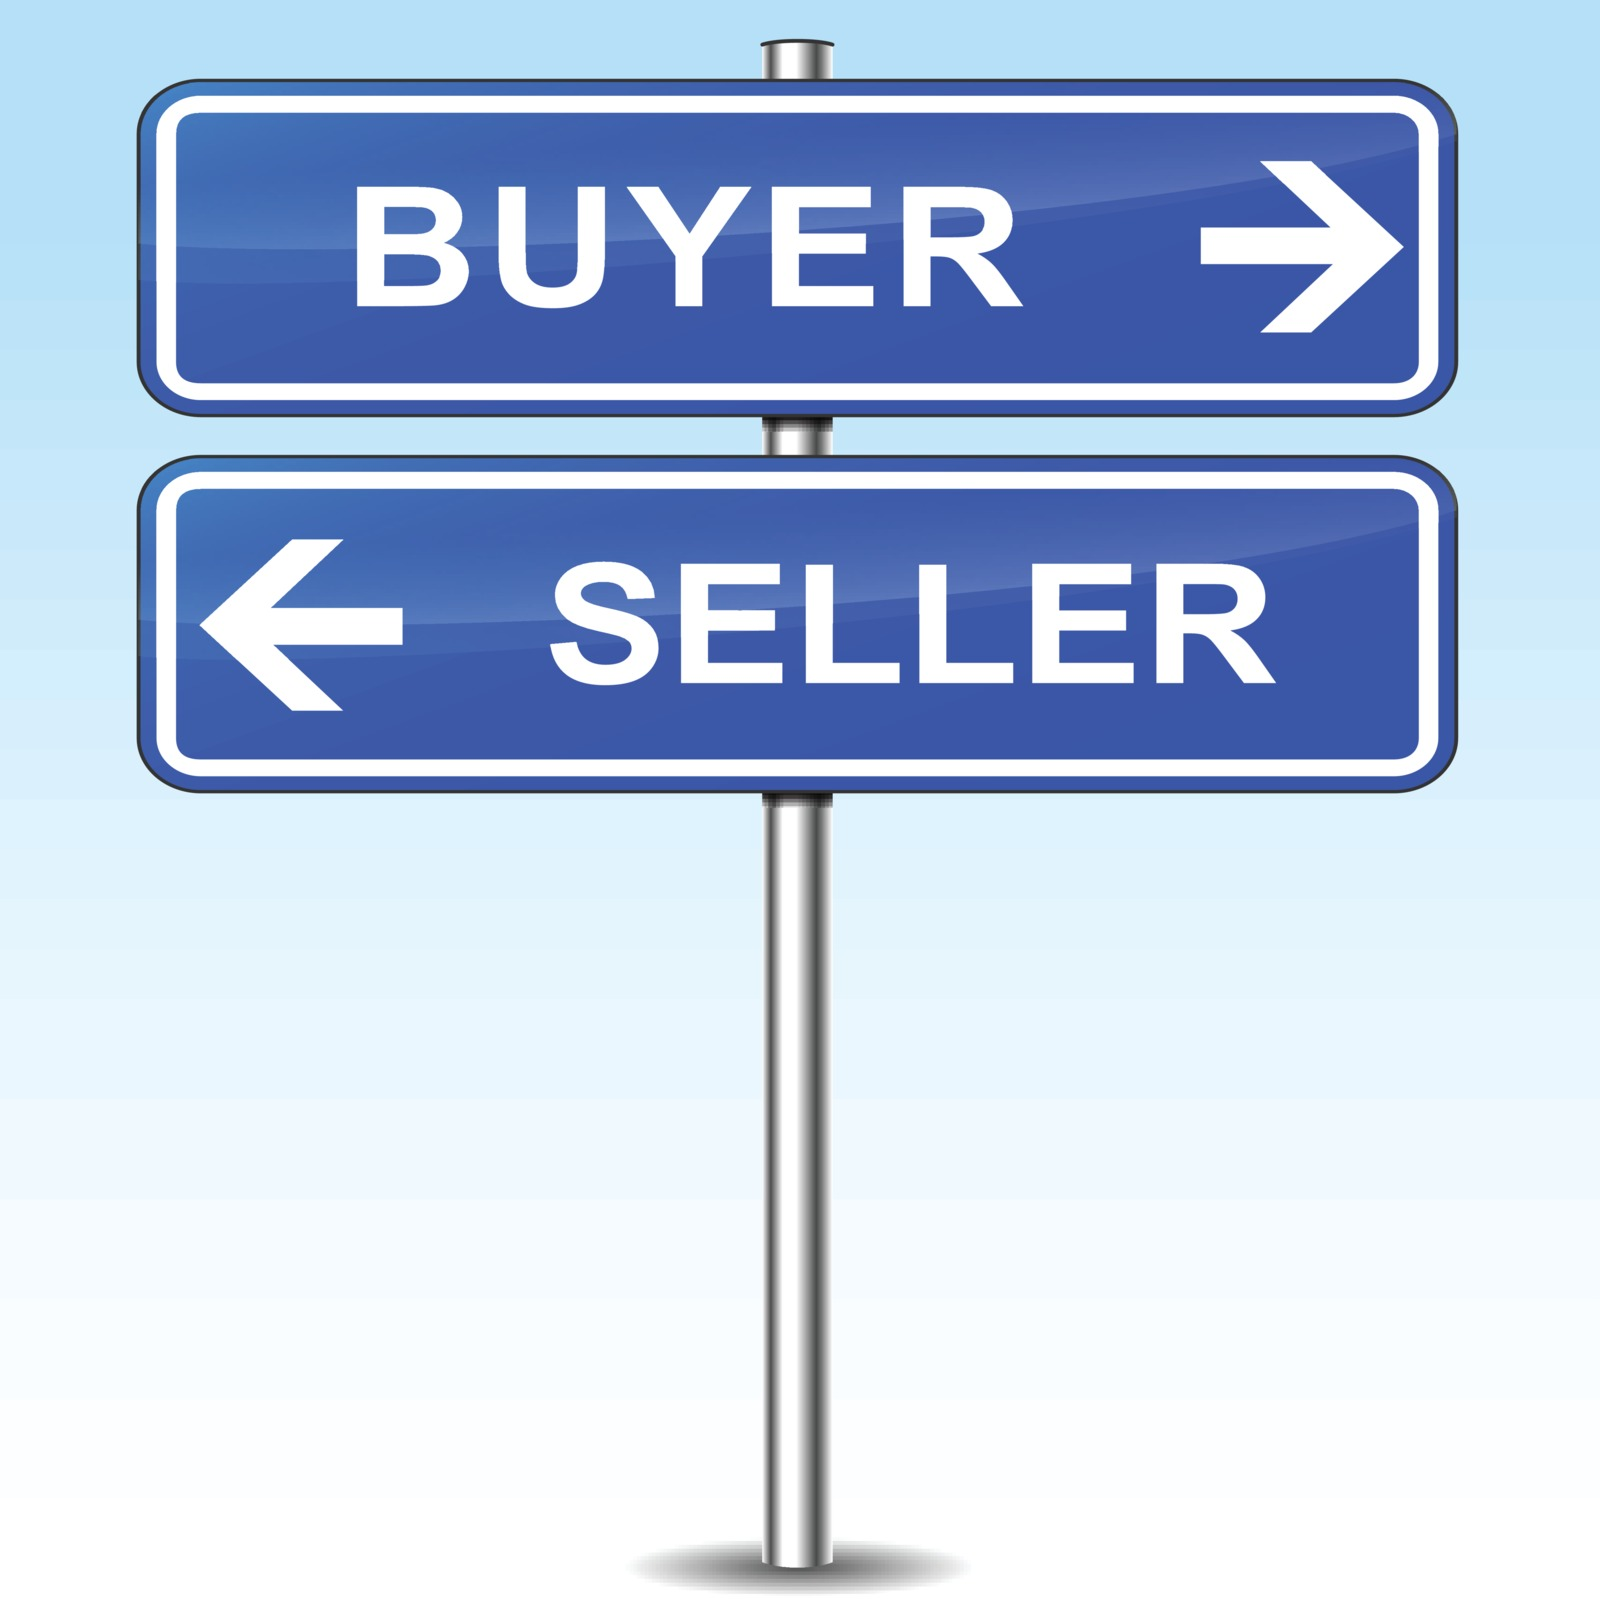 scottsdale real estate buyers & sellers are pointing in opposite directions